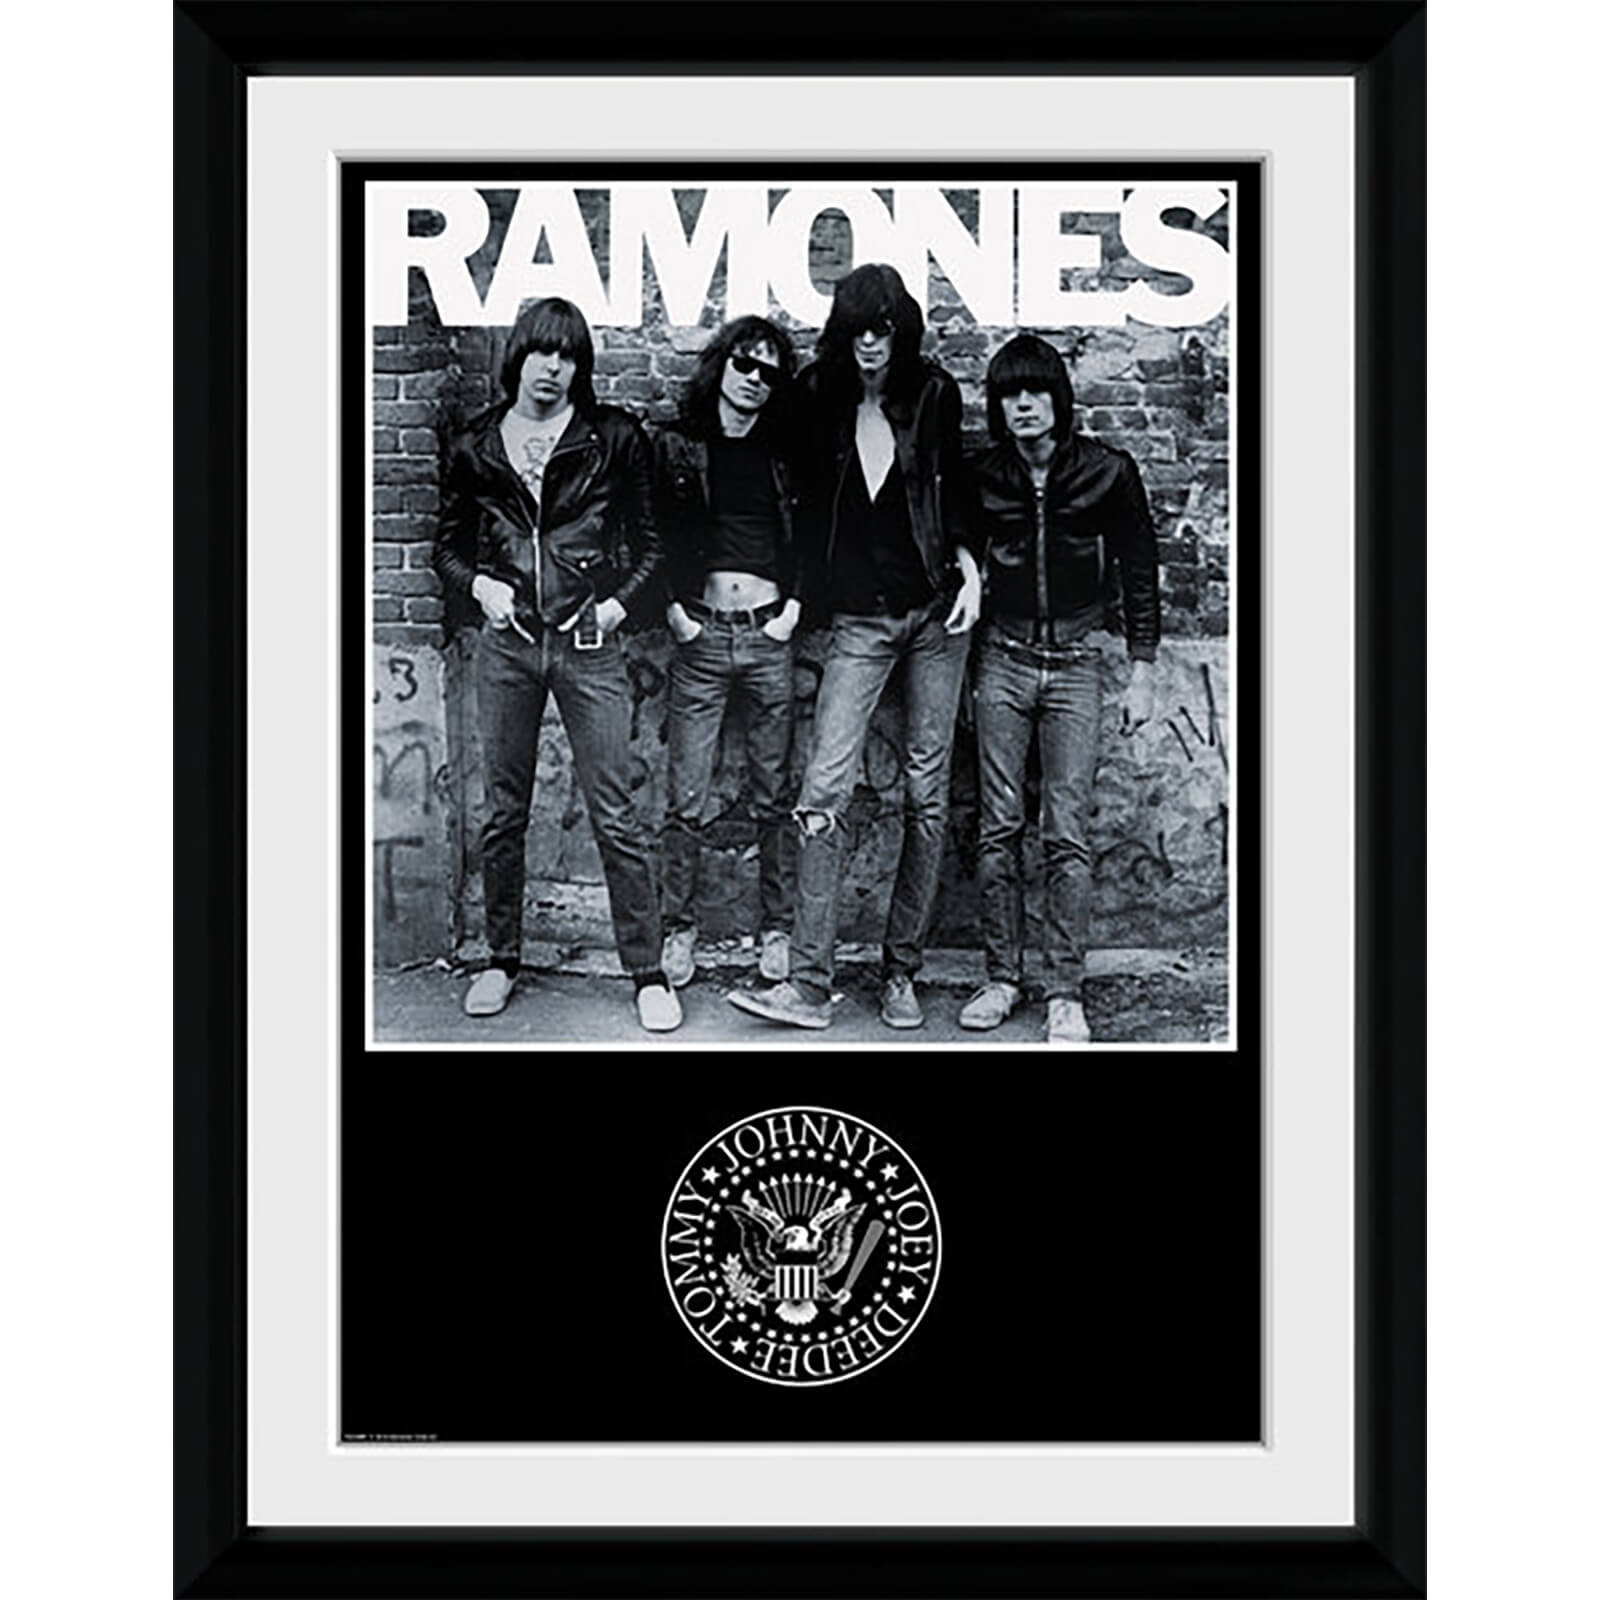 The Ramones Album - 16 x 12 Inches Framed Photograph